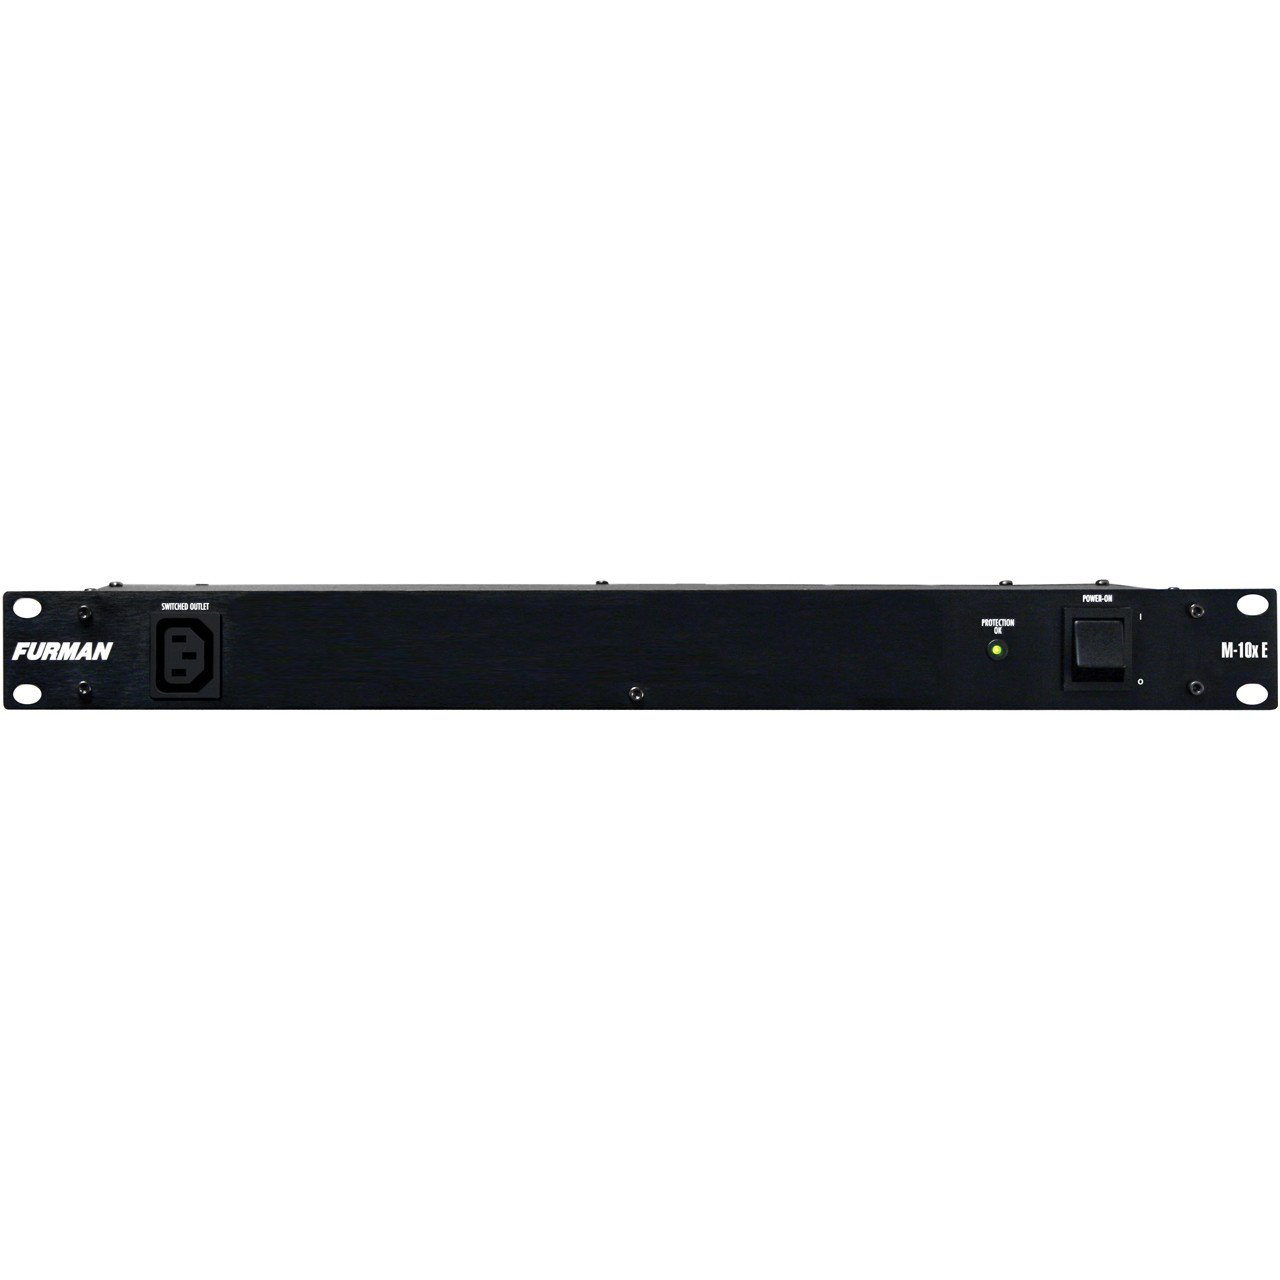 Furman M-10x E Power Conditioner